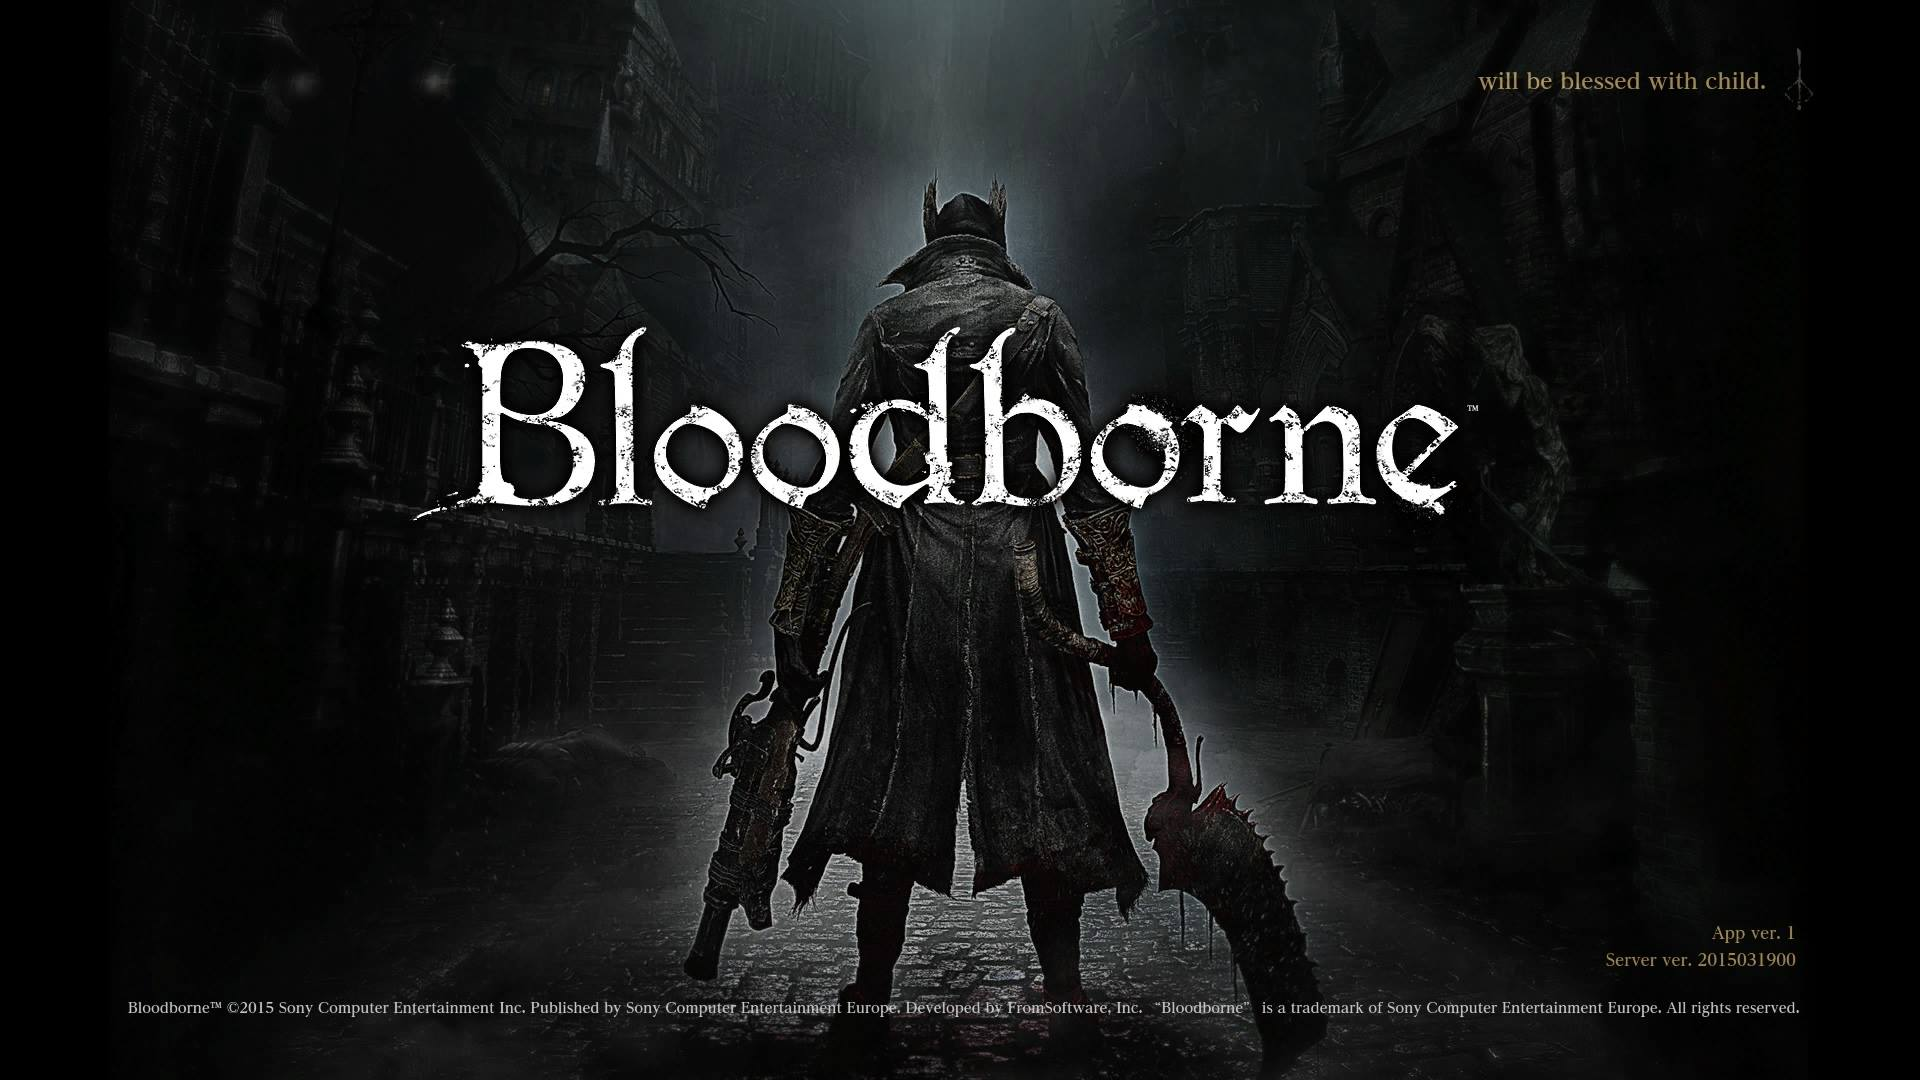 bloodborne-secret-message